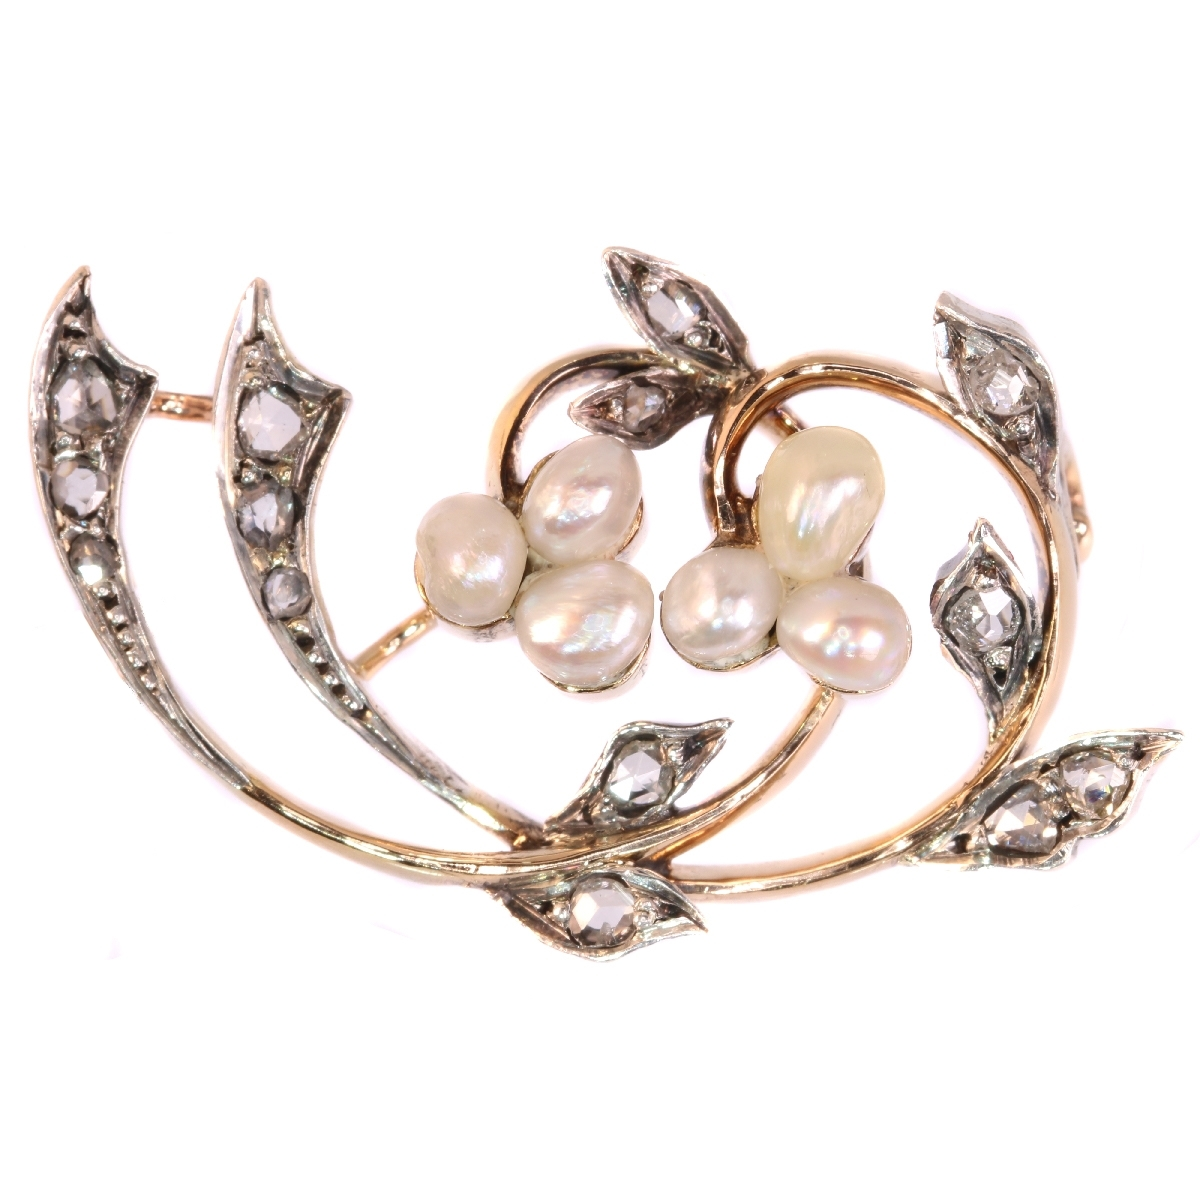 5e2fa9d90 Charming Antique Victorian branch brooch with pearls and diamonds:  Description by Adin Antique Jewelry.